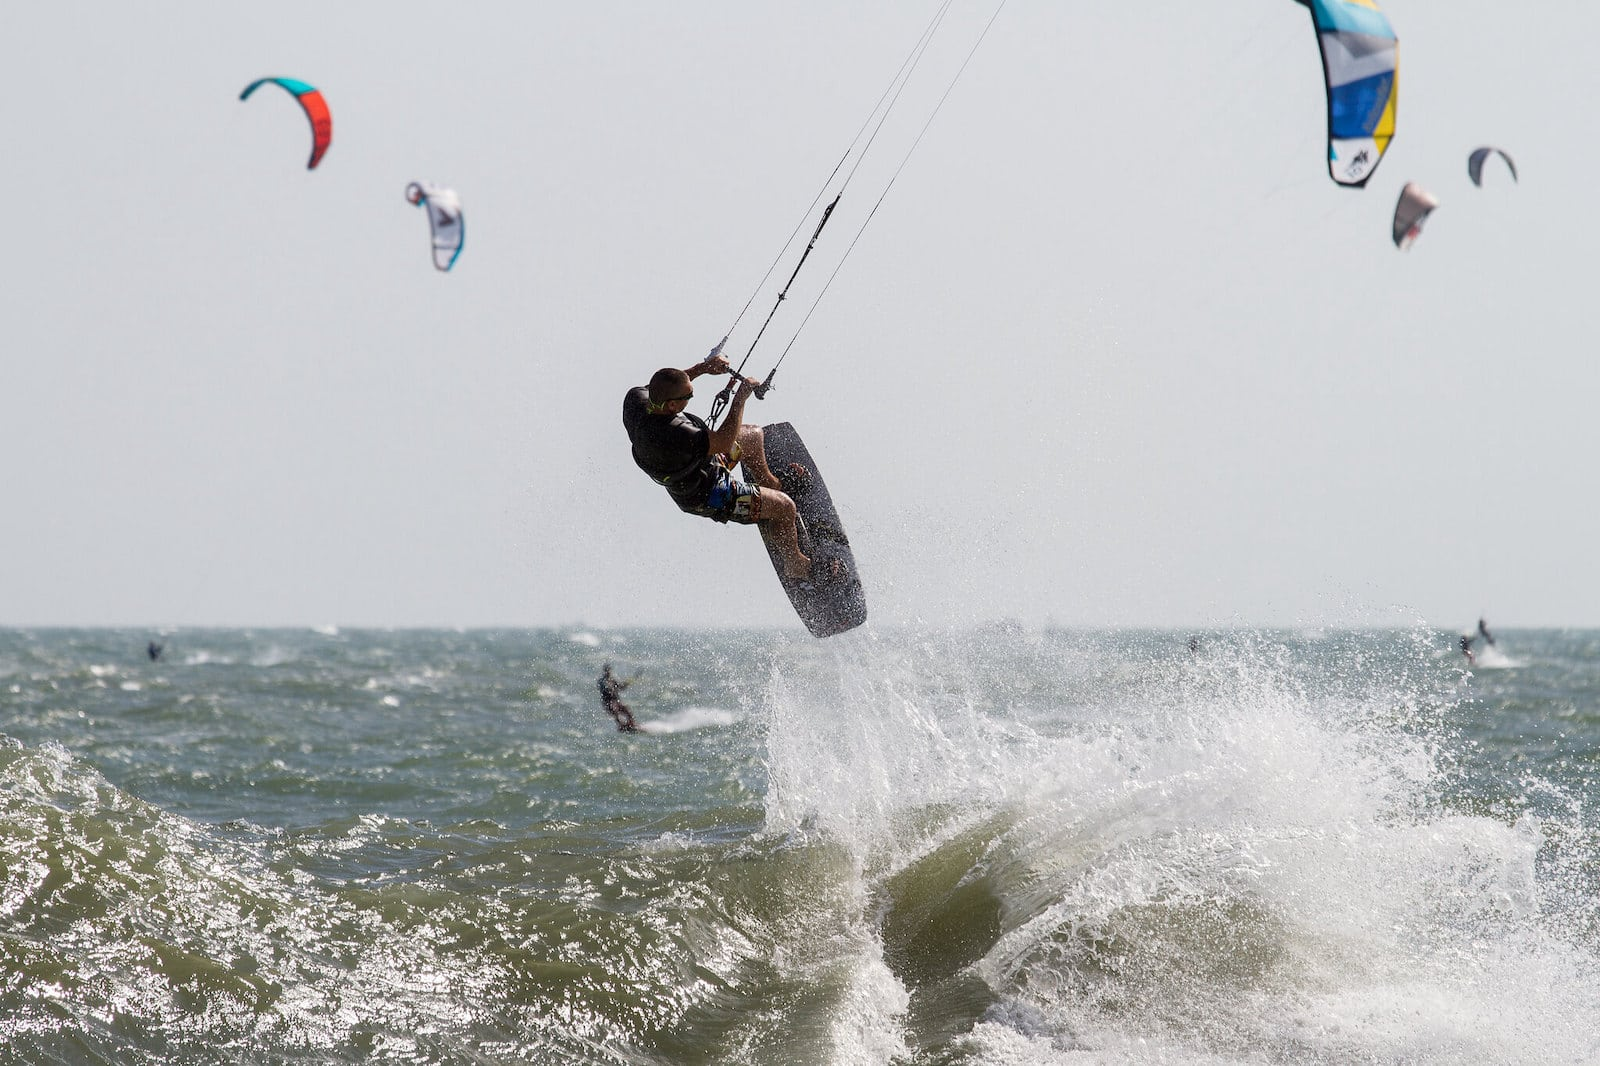 Image of a kite surfer at a becah in Mui Ne, Vietnam